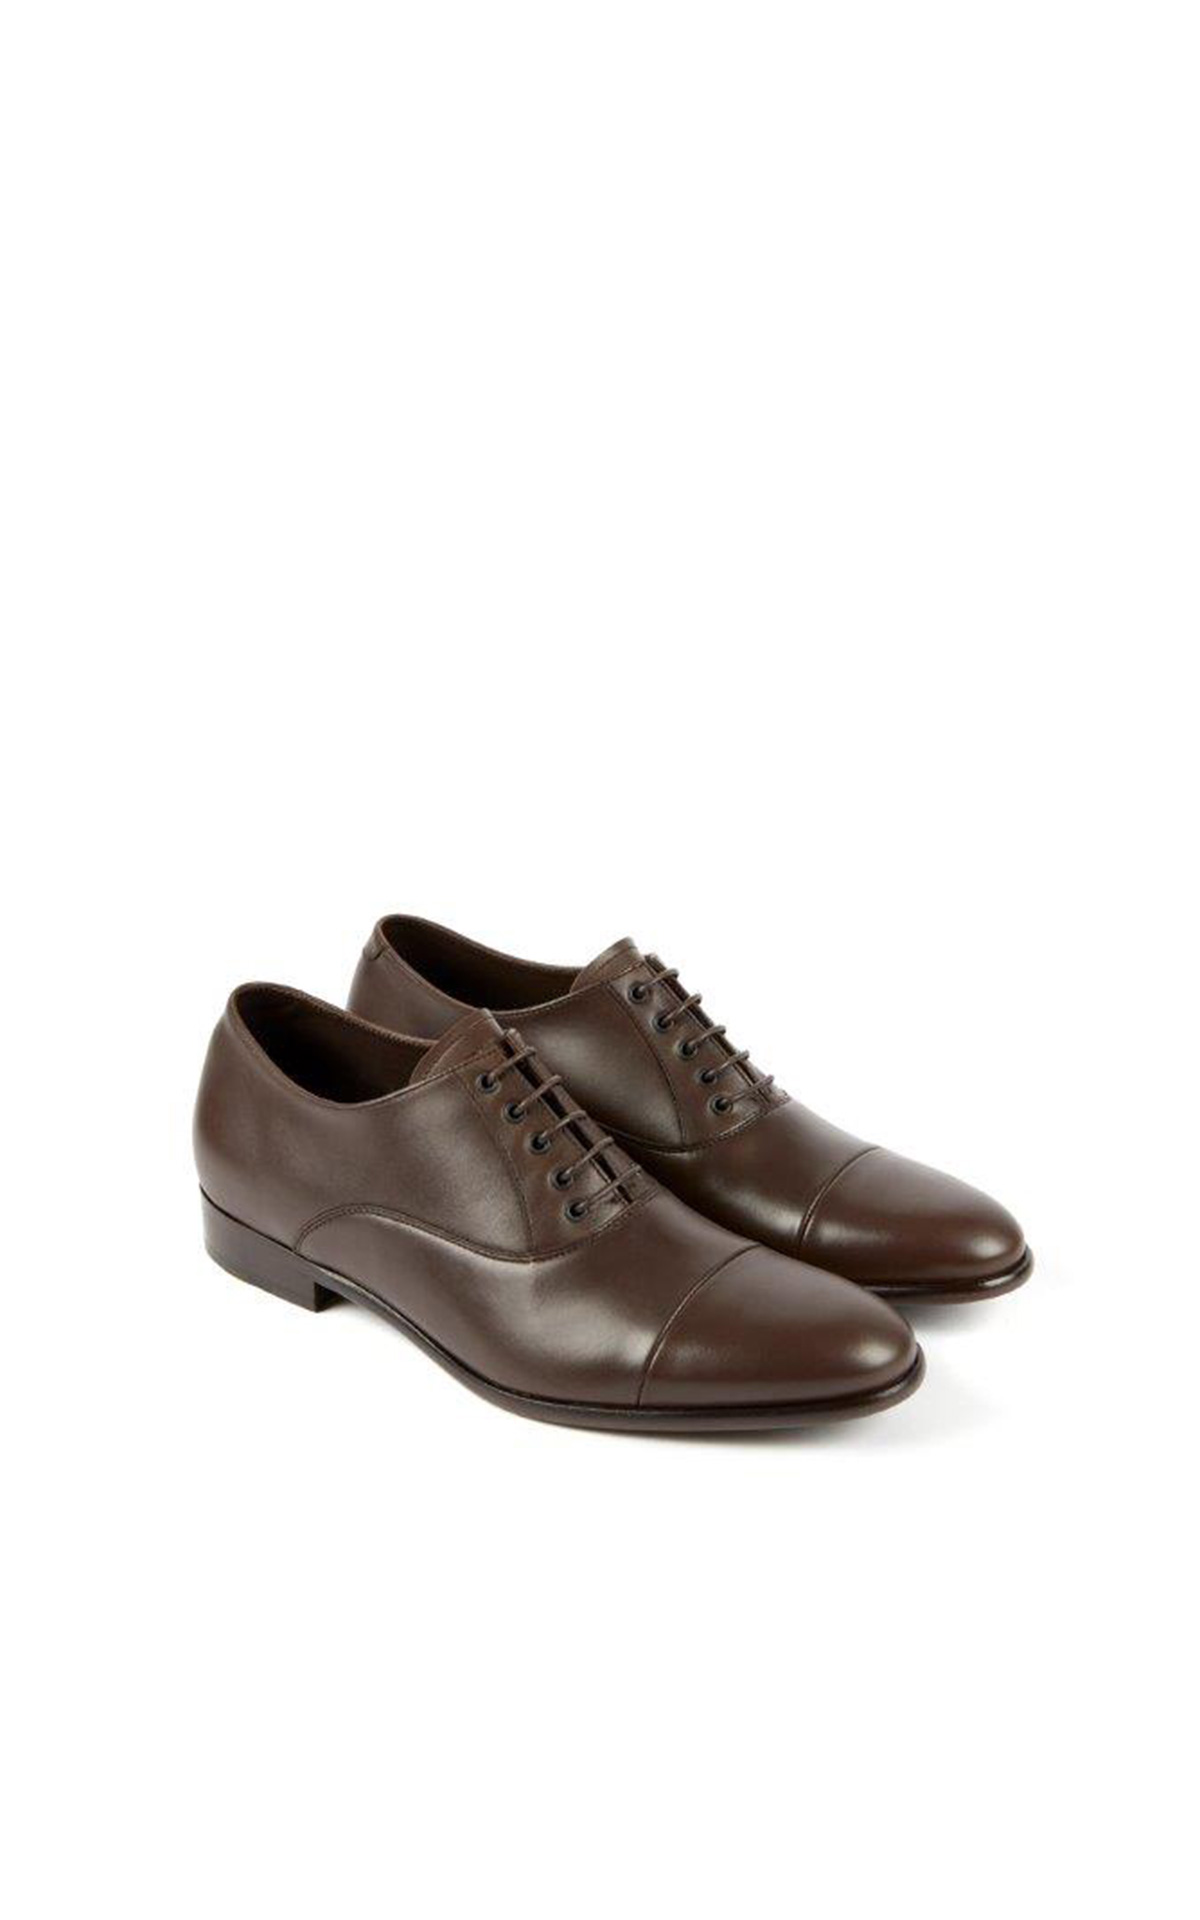 heschung Lotus Softycalf shoes chestnut color in leather la vallée village